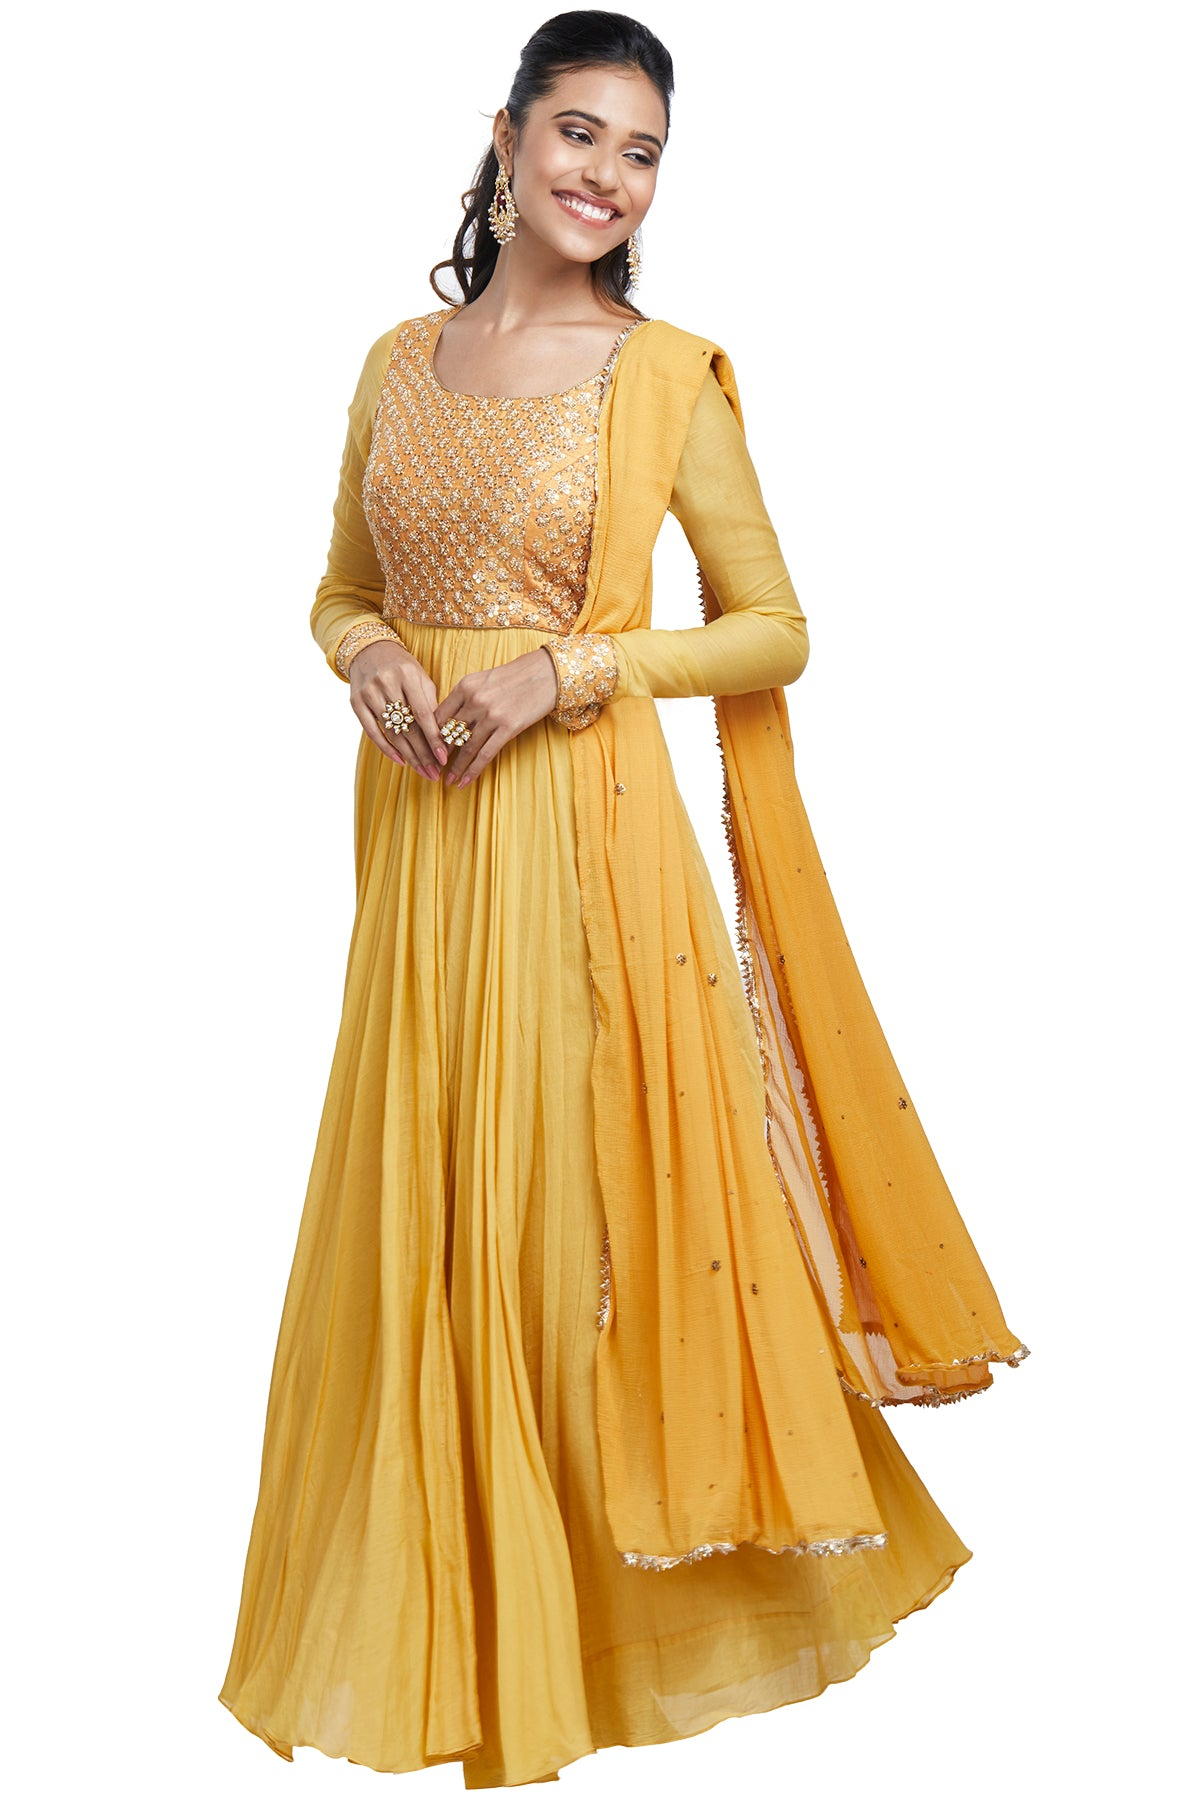 Have a fetish for sunshine and vibrant hues? Slip into our ochre yellow full-sleeved anarkali in chanderi finished with a sequin-embroidered bodice and georgette dupatta.